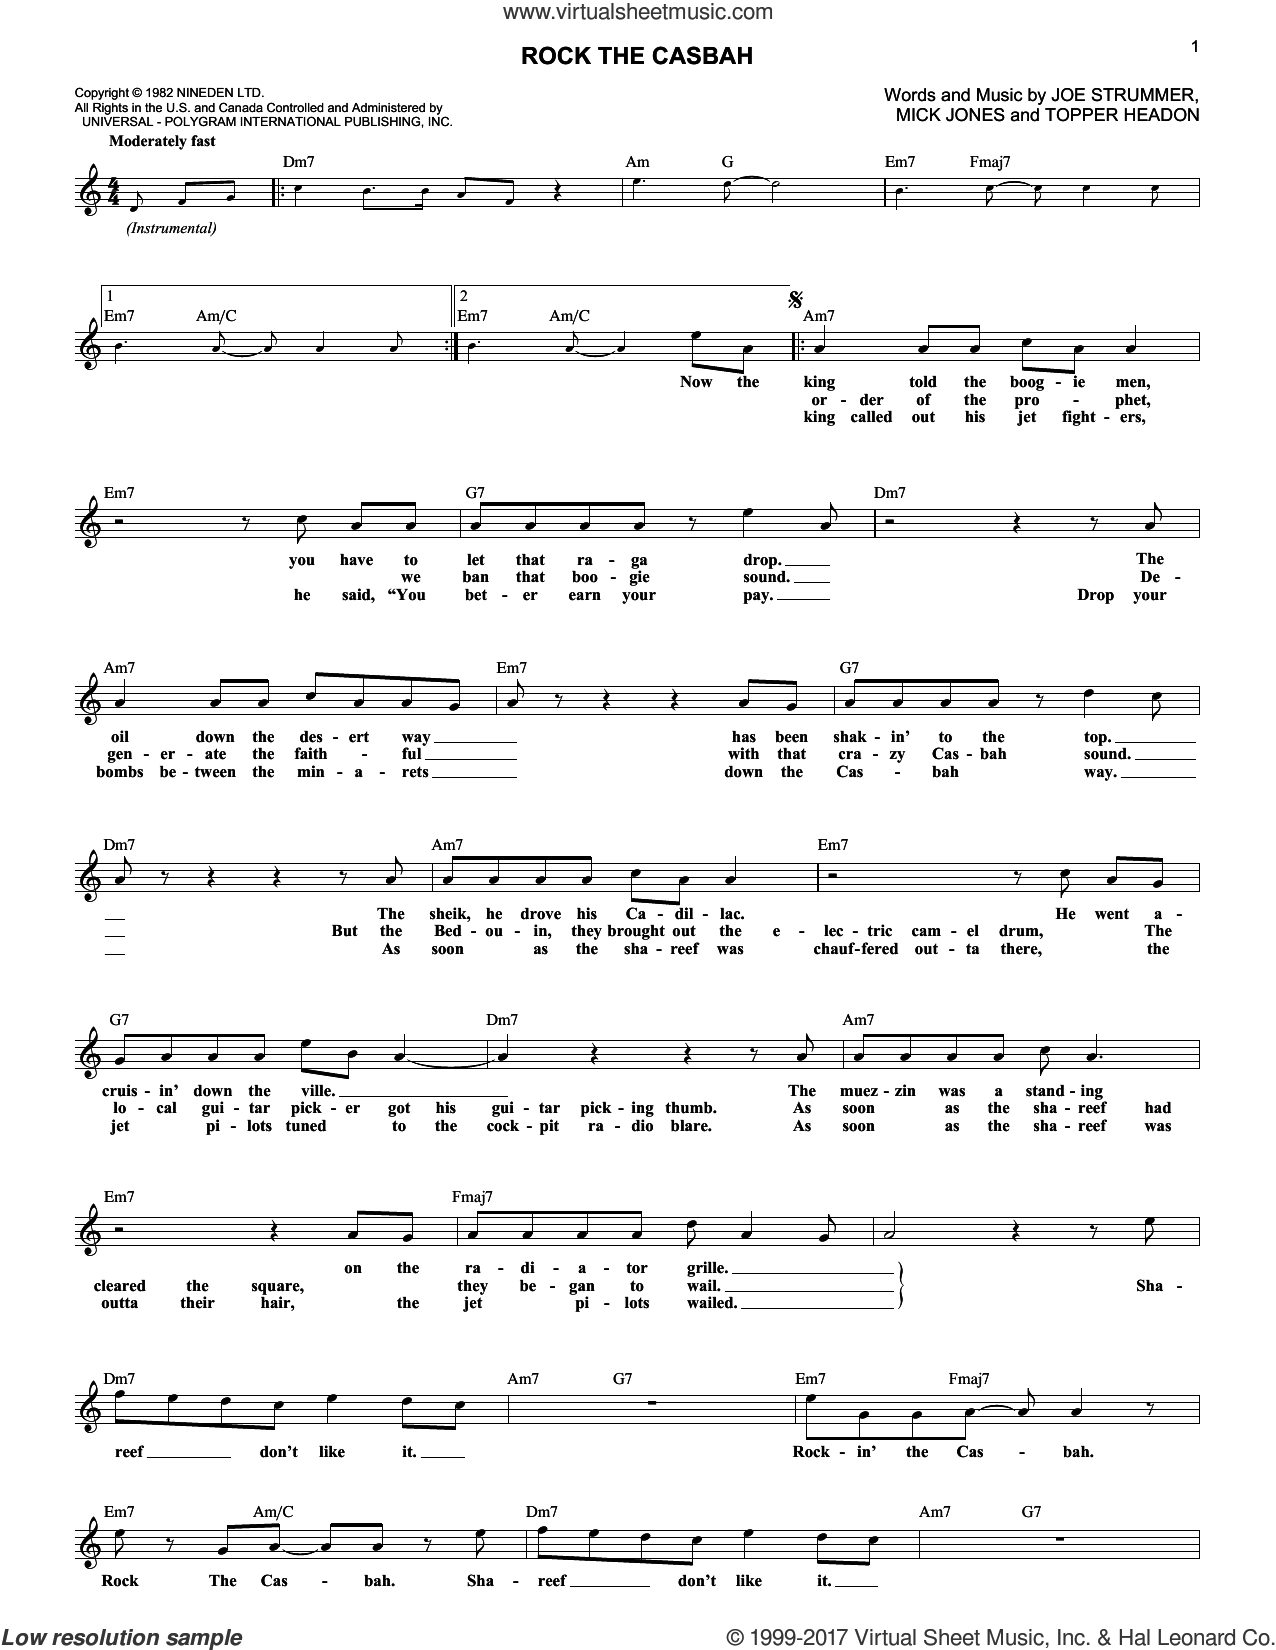 Rock The Casbah sheet music for voice and other instruments (fake book) by The Clash, Joe Strummer, Mick Jones and Topper Headon, intermediate skill level